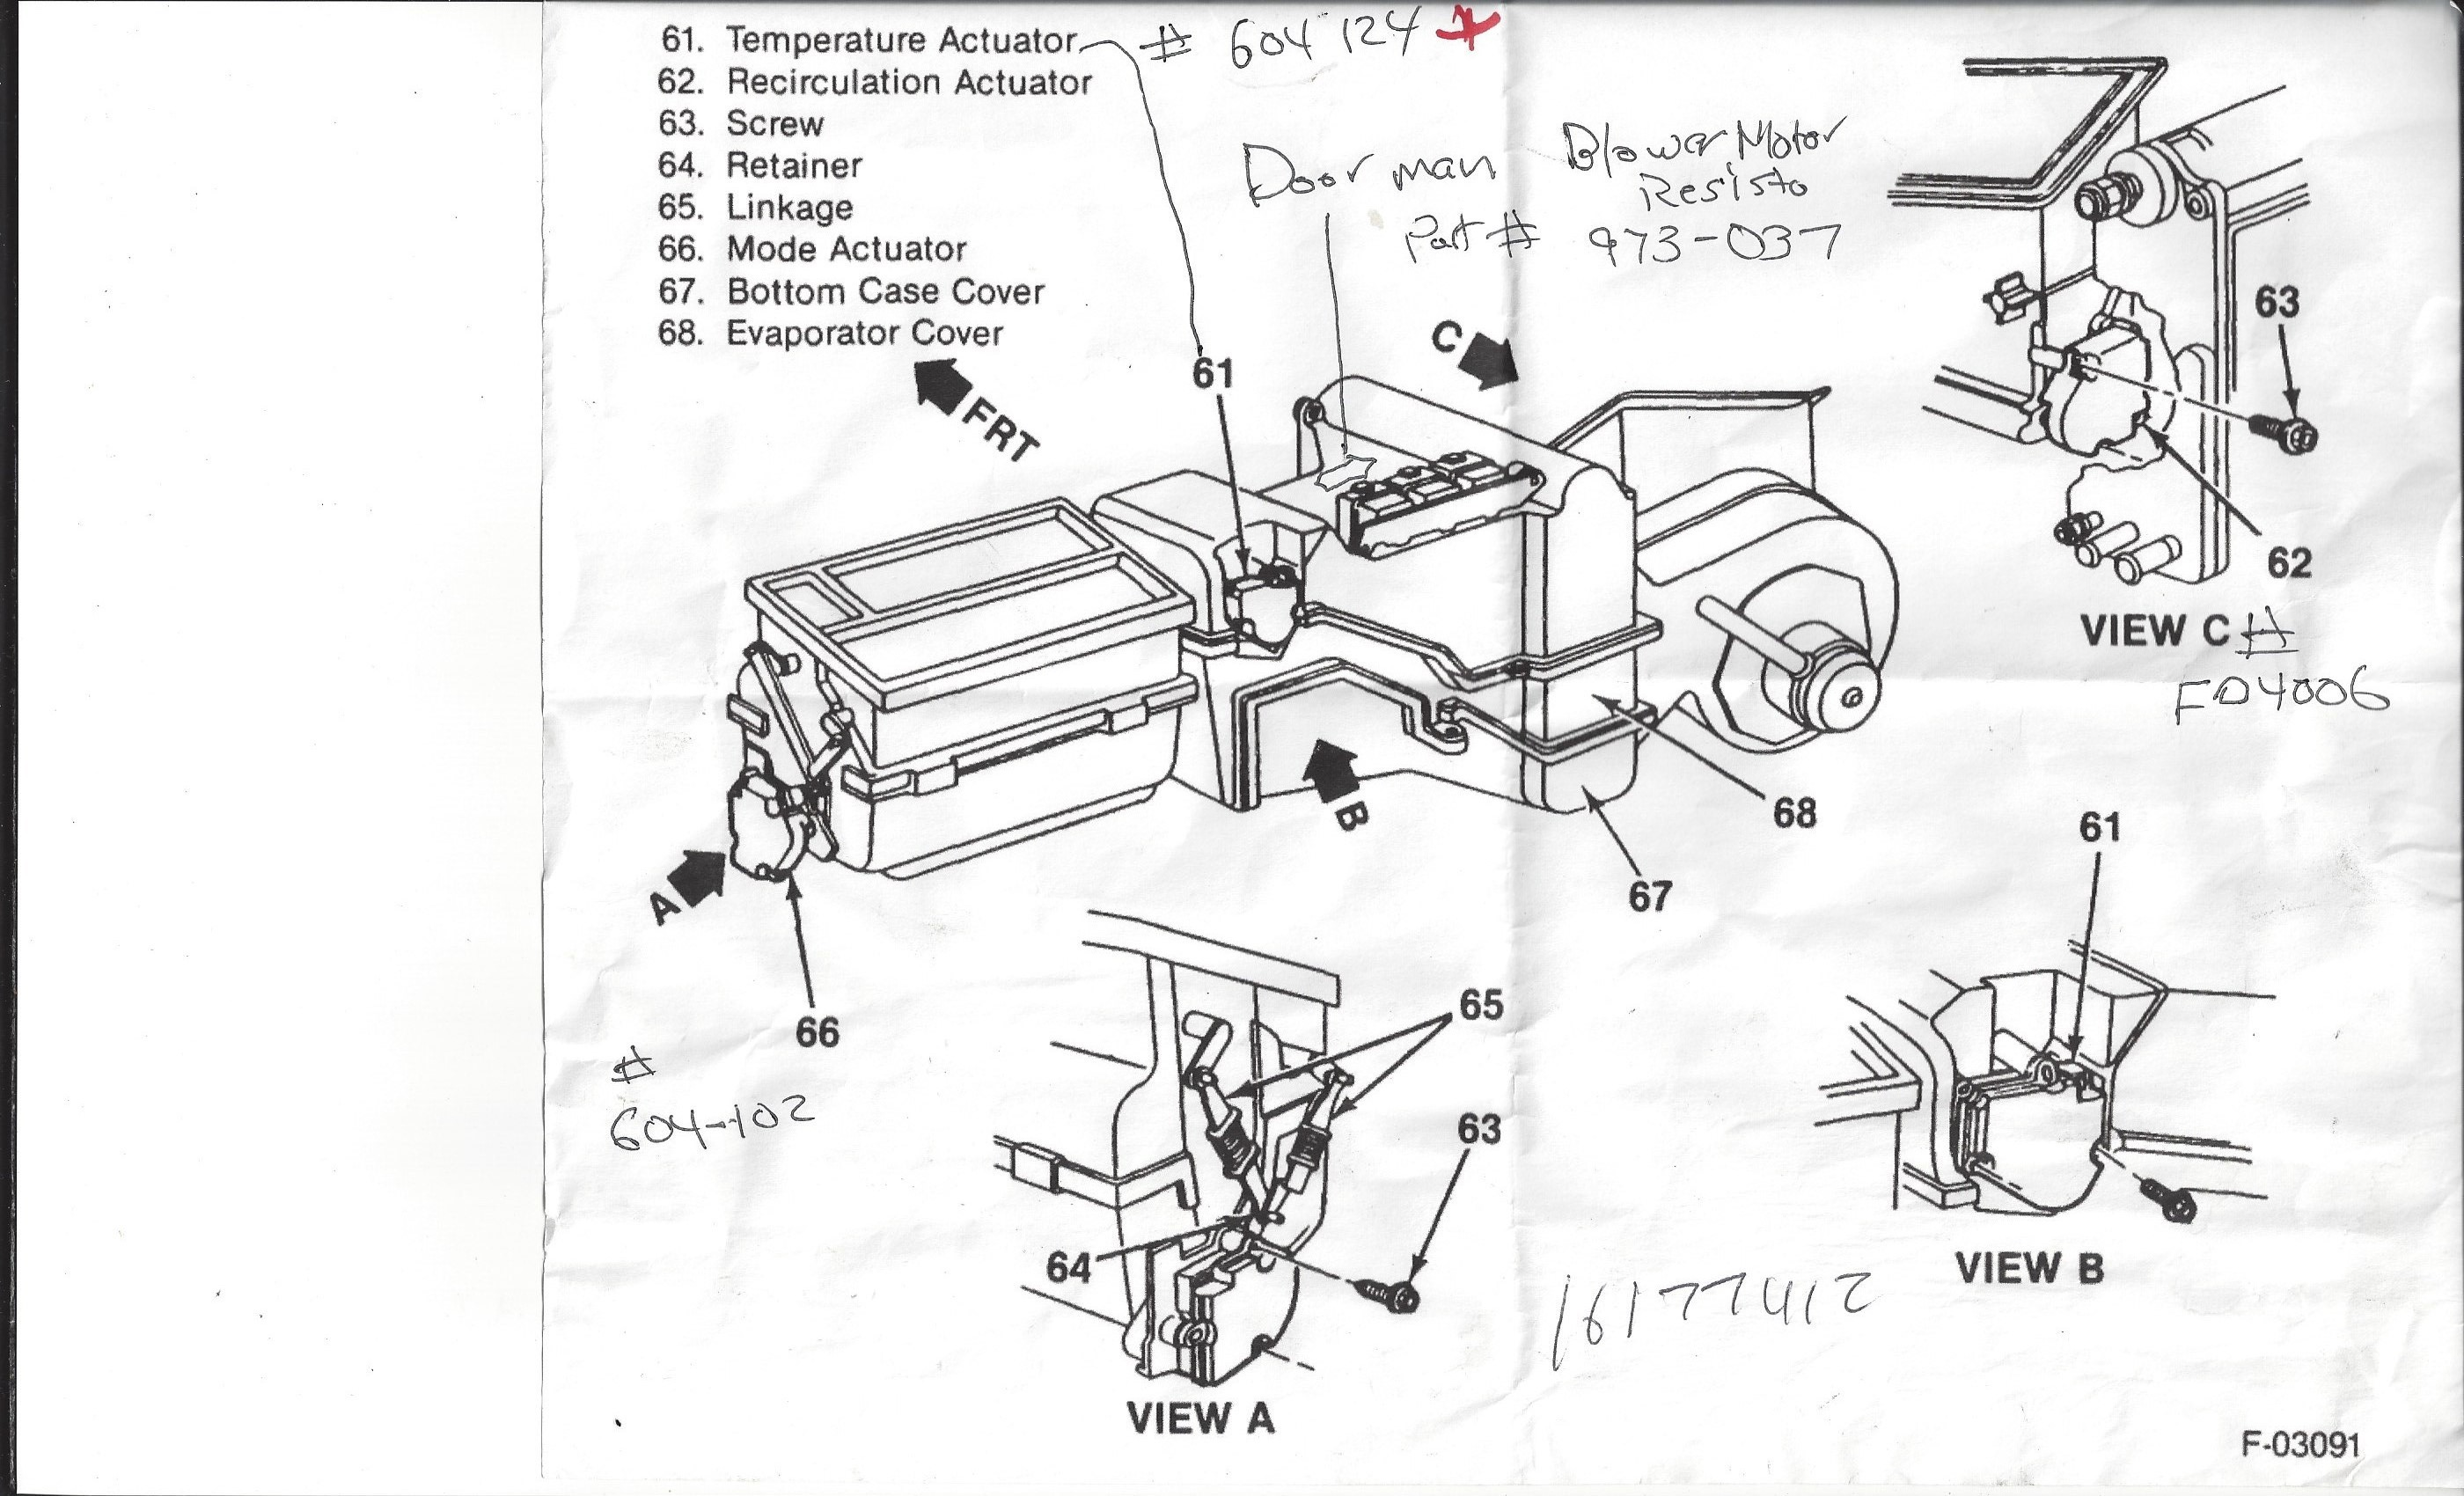 1990 Topkick Wiring Diagram. 1990 chevy kodiak gmc topkick